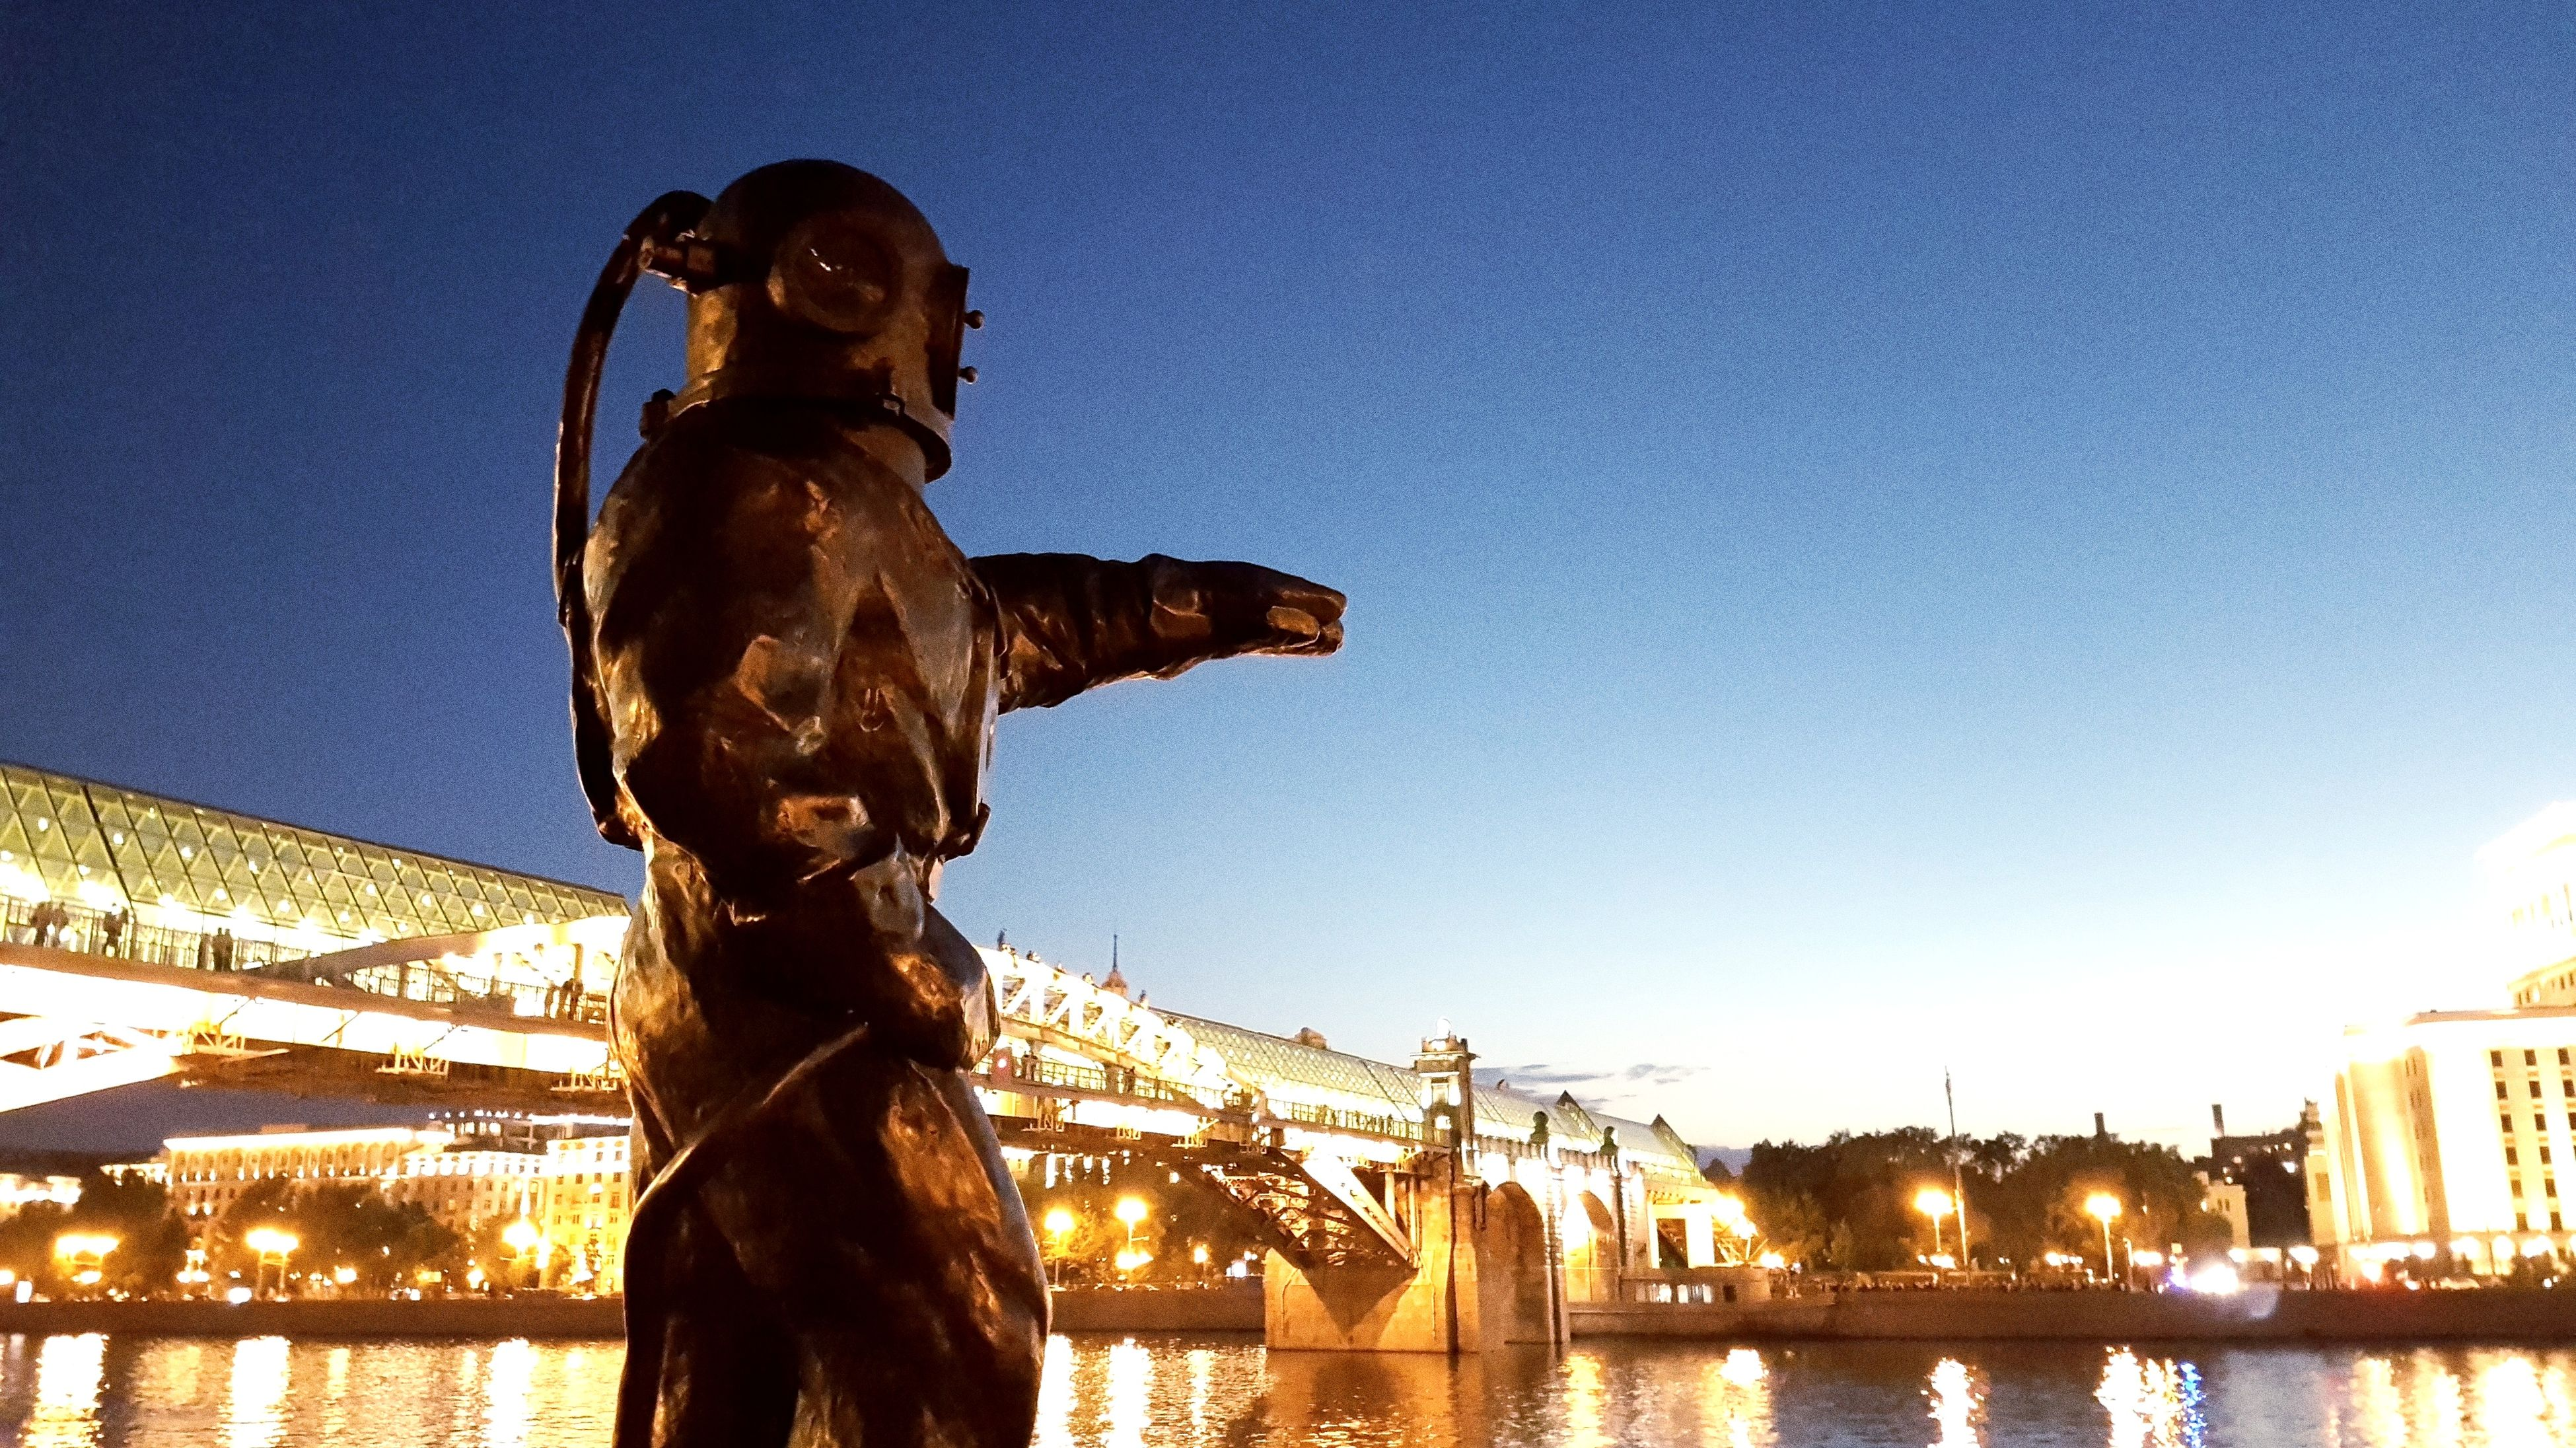 statue, sculpture, human representation, art and craft, built structure, architecture, bridge - man made structure, building exterior, travel destinations, outdoors, city, low angle view, clear sky, sky, water, no people, illuminated, day